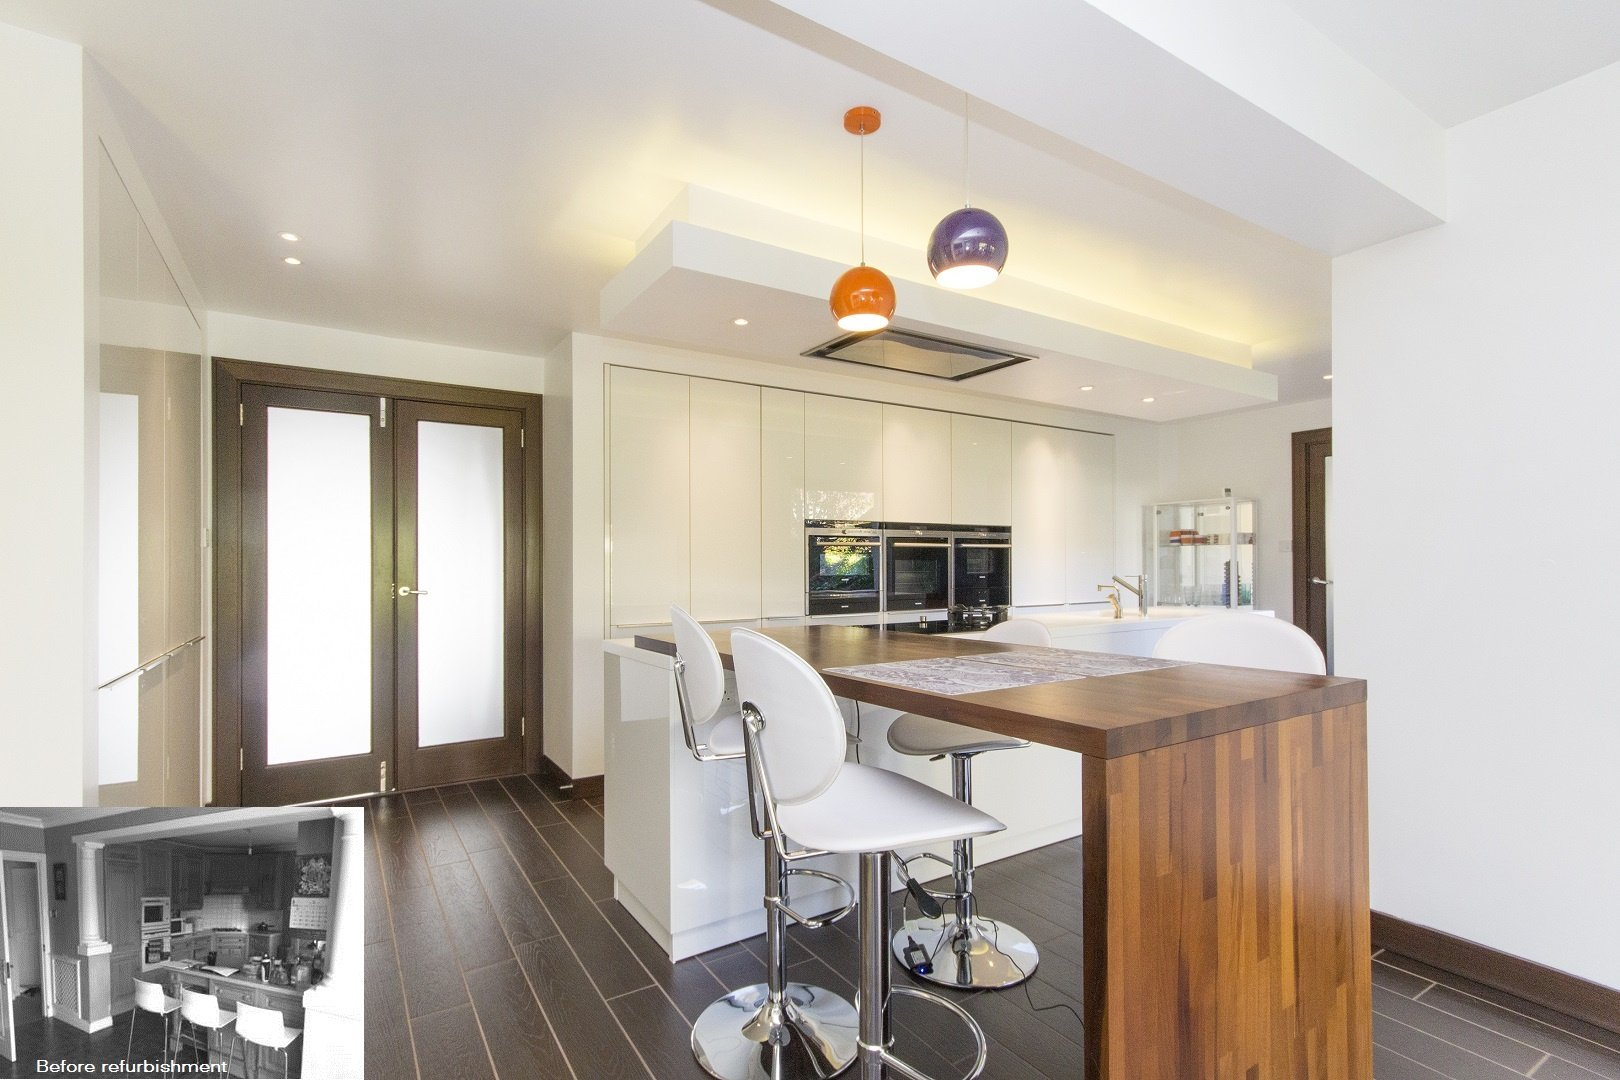 Kitchen within extension